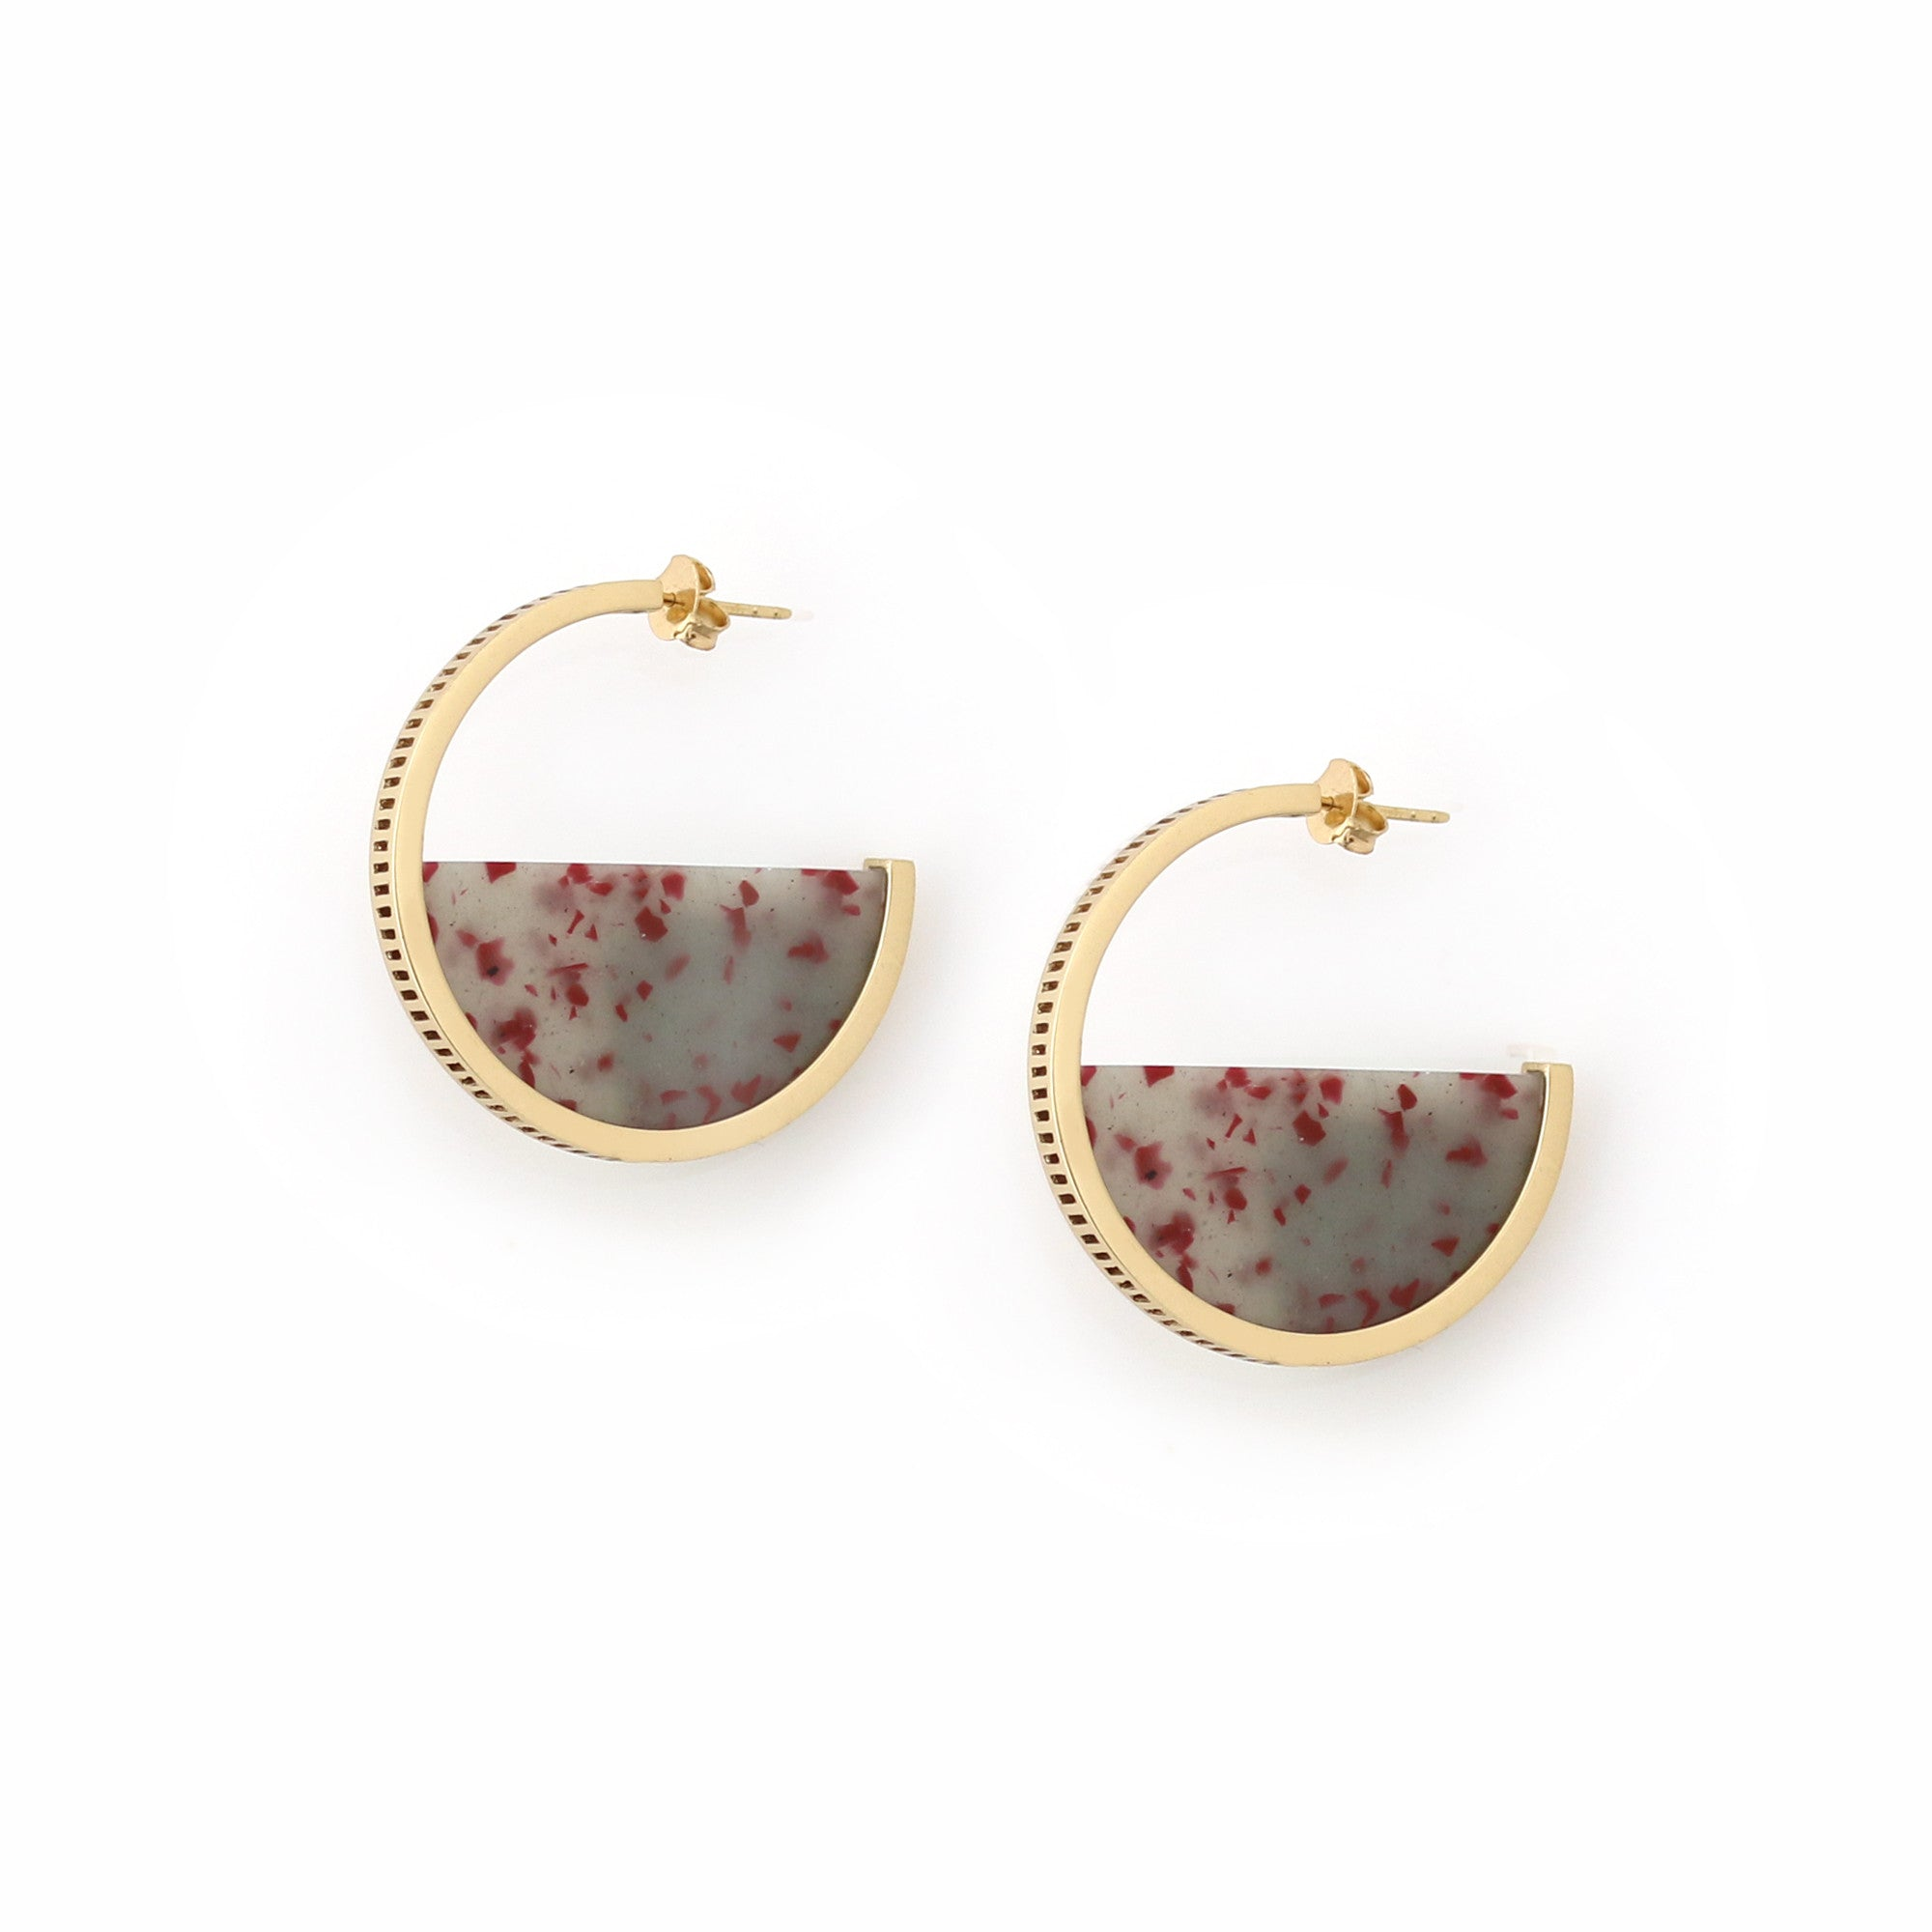 Zenith Hoop Earrings - Eucalypt